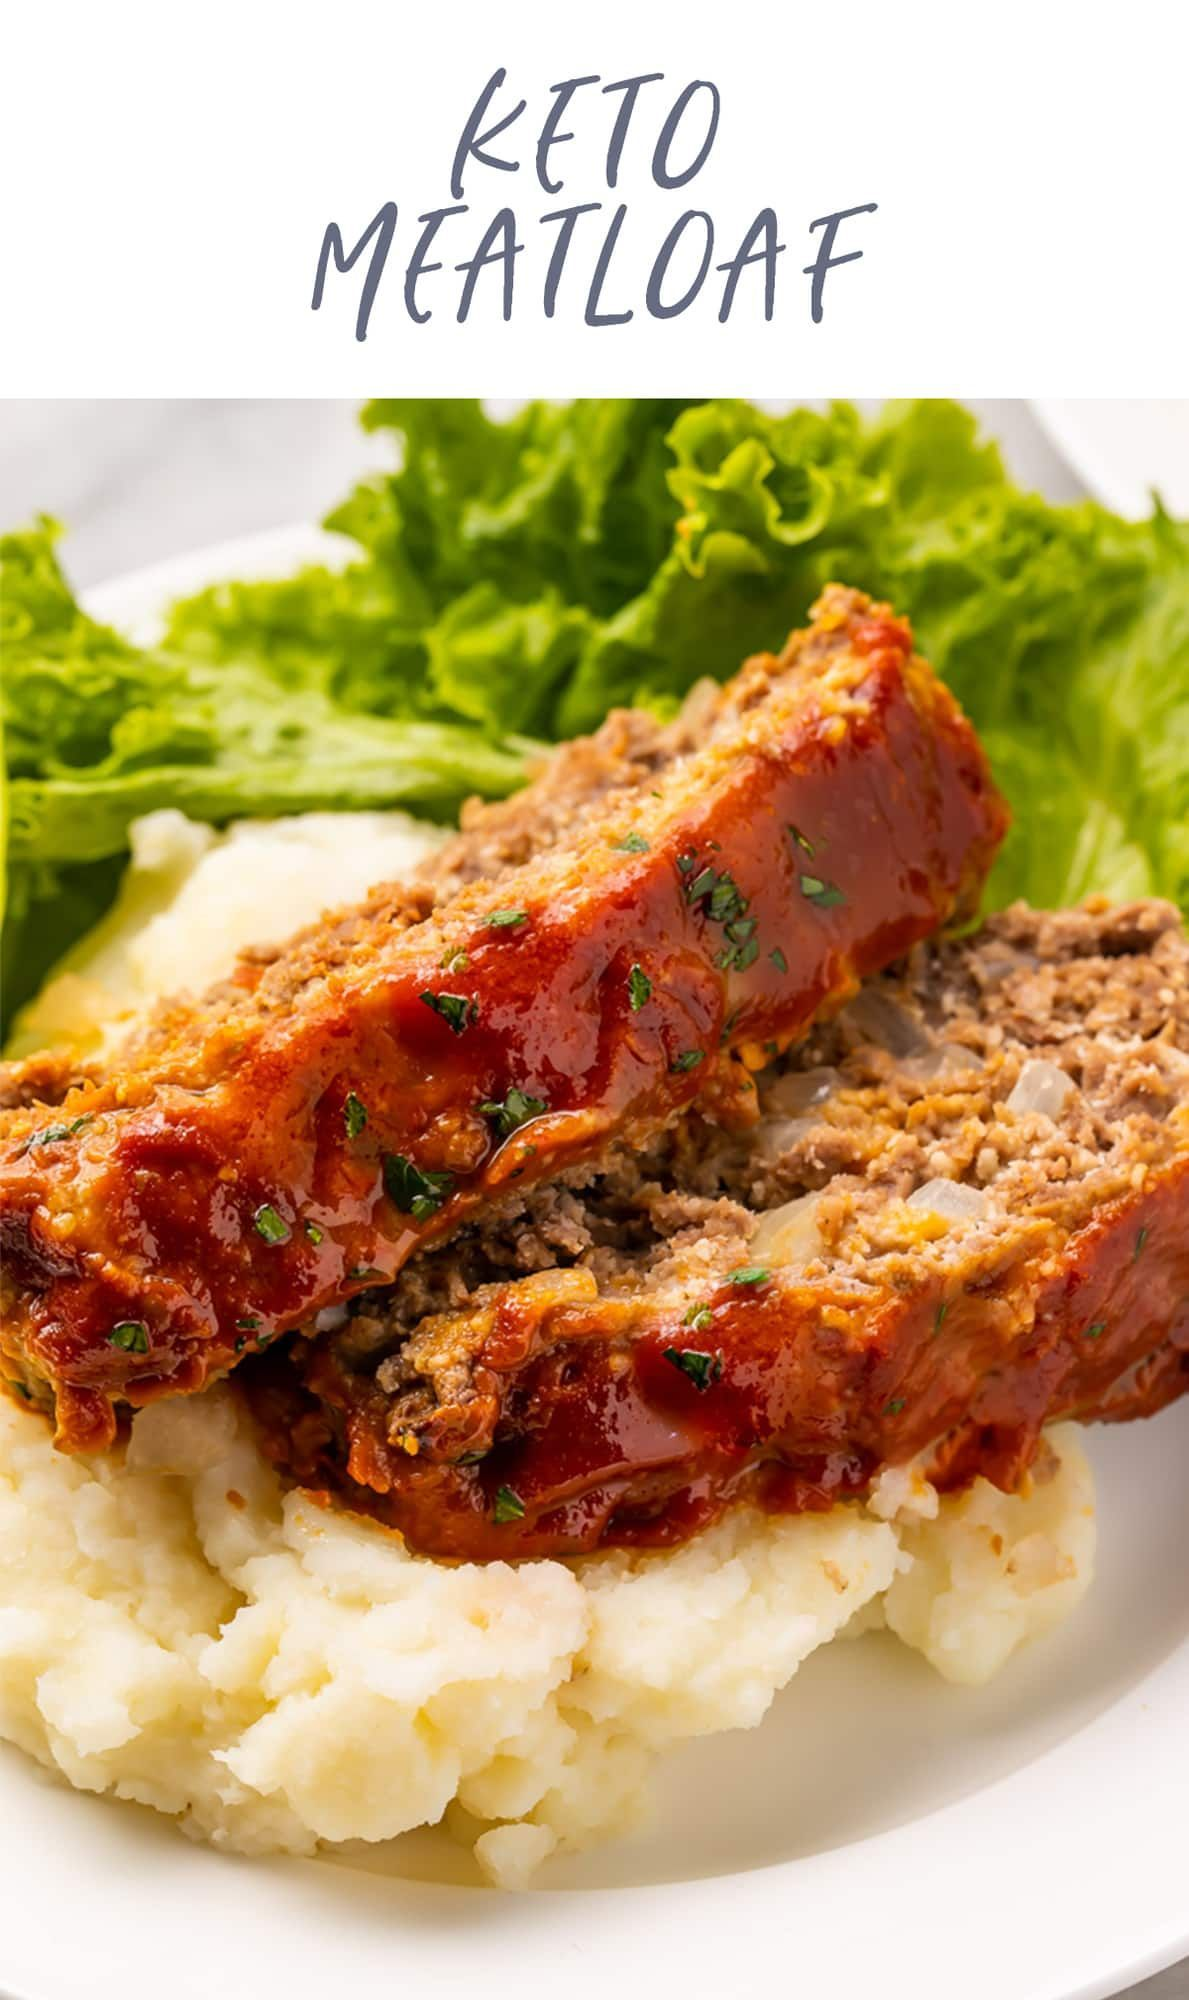 Keto Meatloaf Recipe In 2021 Clean Eating Recipes For Dinner Meatloaf Meatloaf Recipes